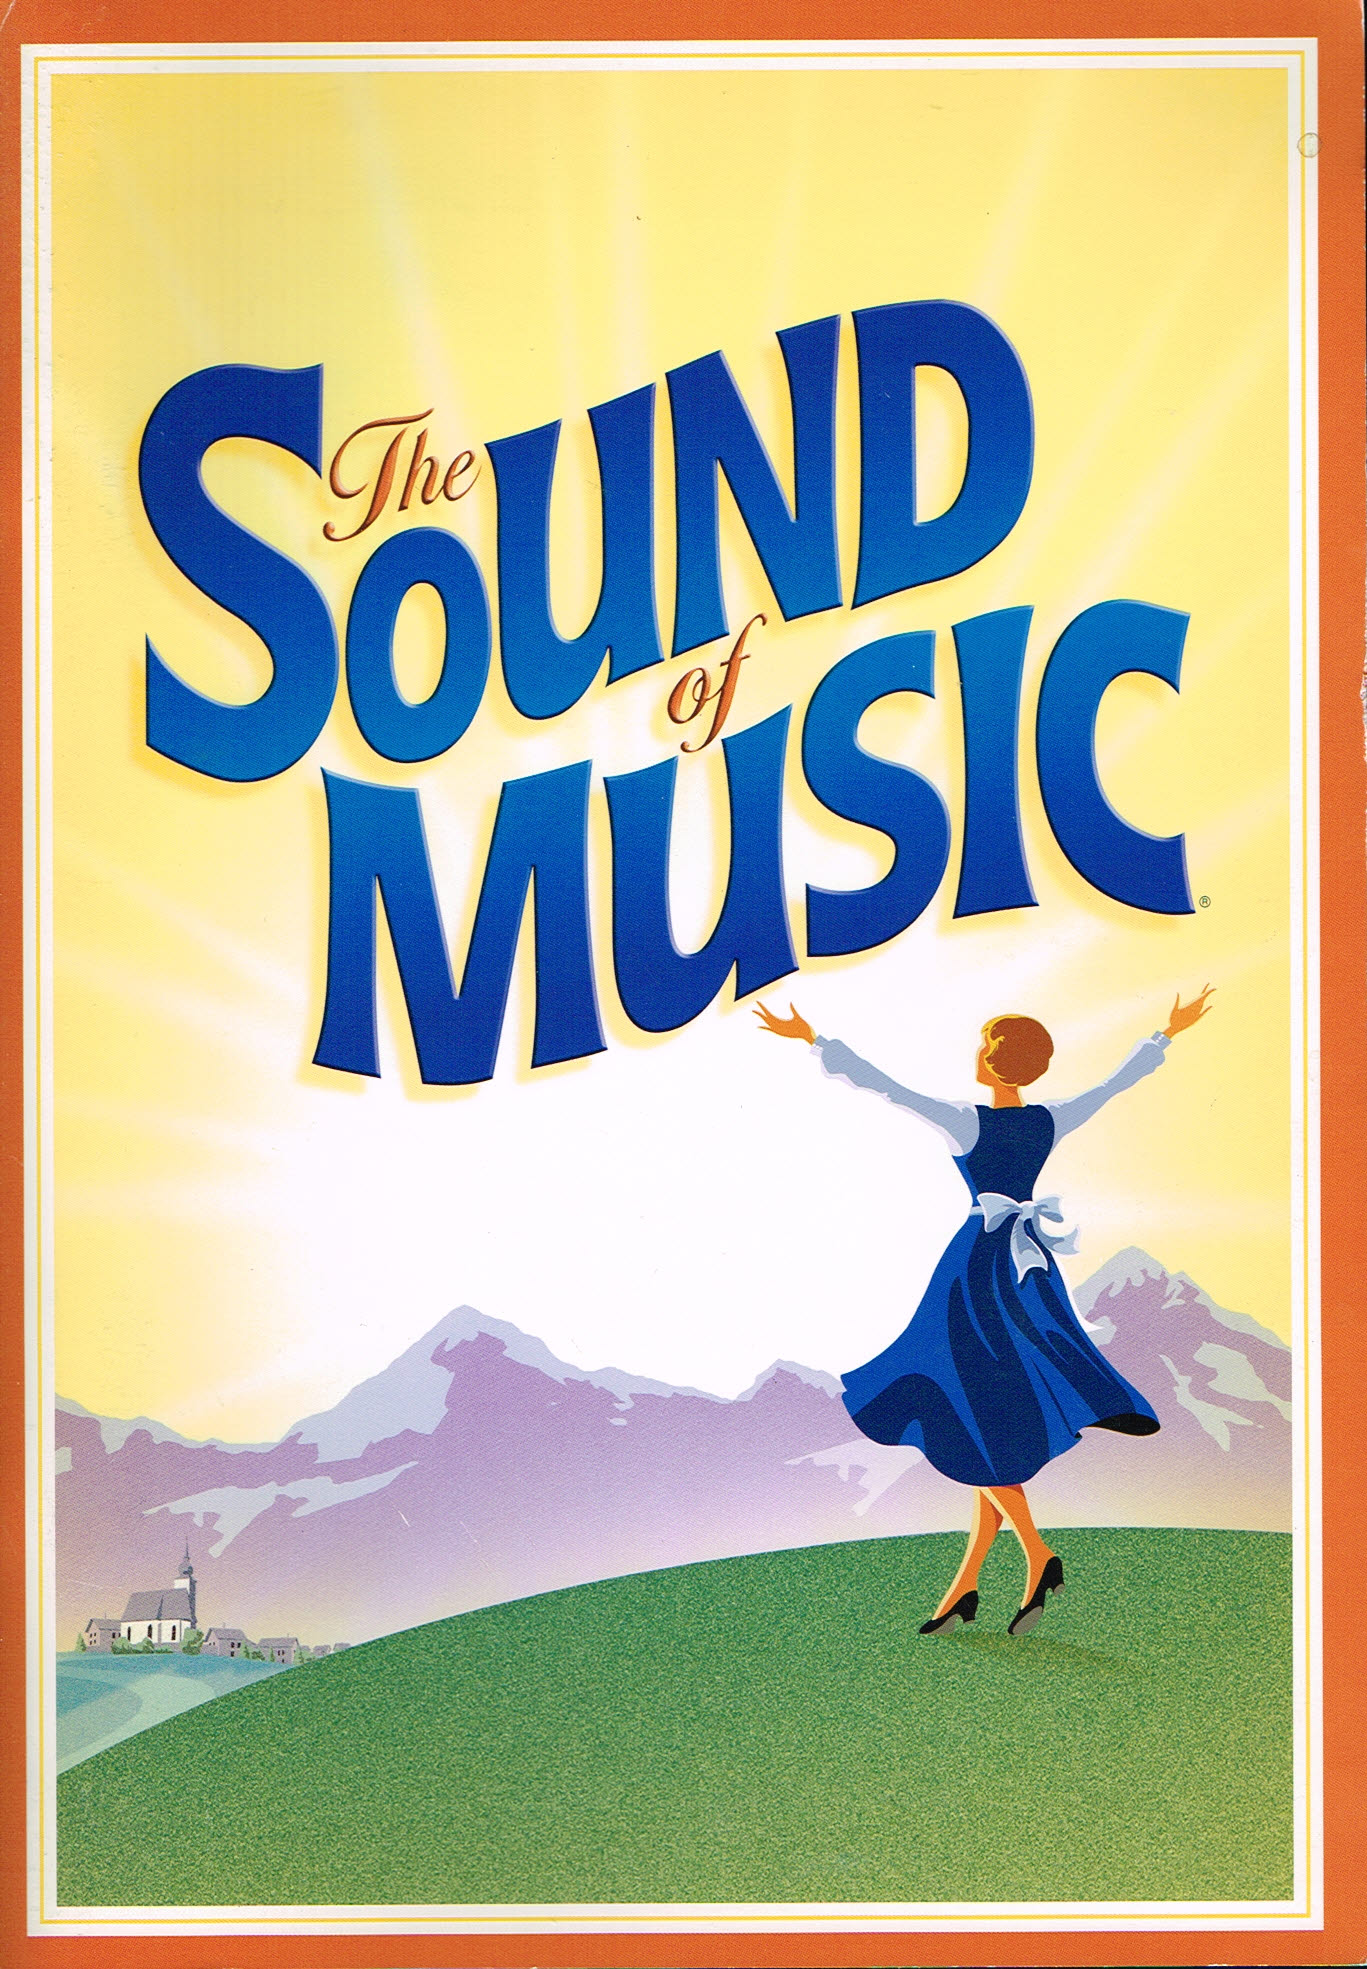 Sound of Music souvenir brochure CONNIE FISHER MICHAEL PRAED 2009-2010 plus family album ref101532 S4 Photographs in this theatre brochure are of the July 2009 and Februaary 2010 UK Tour cast